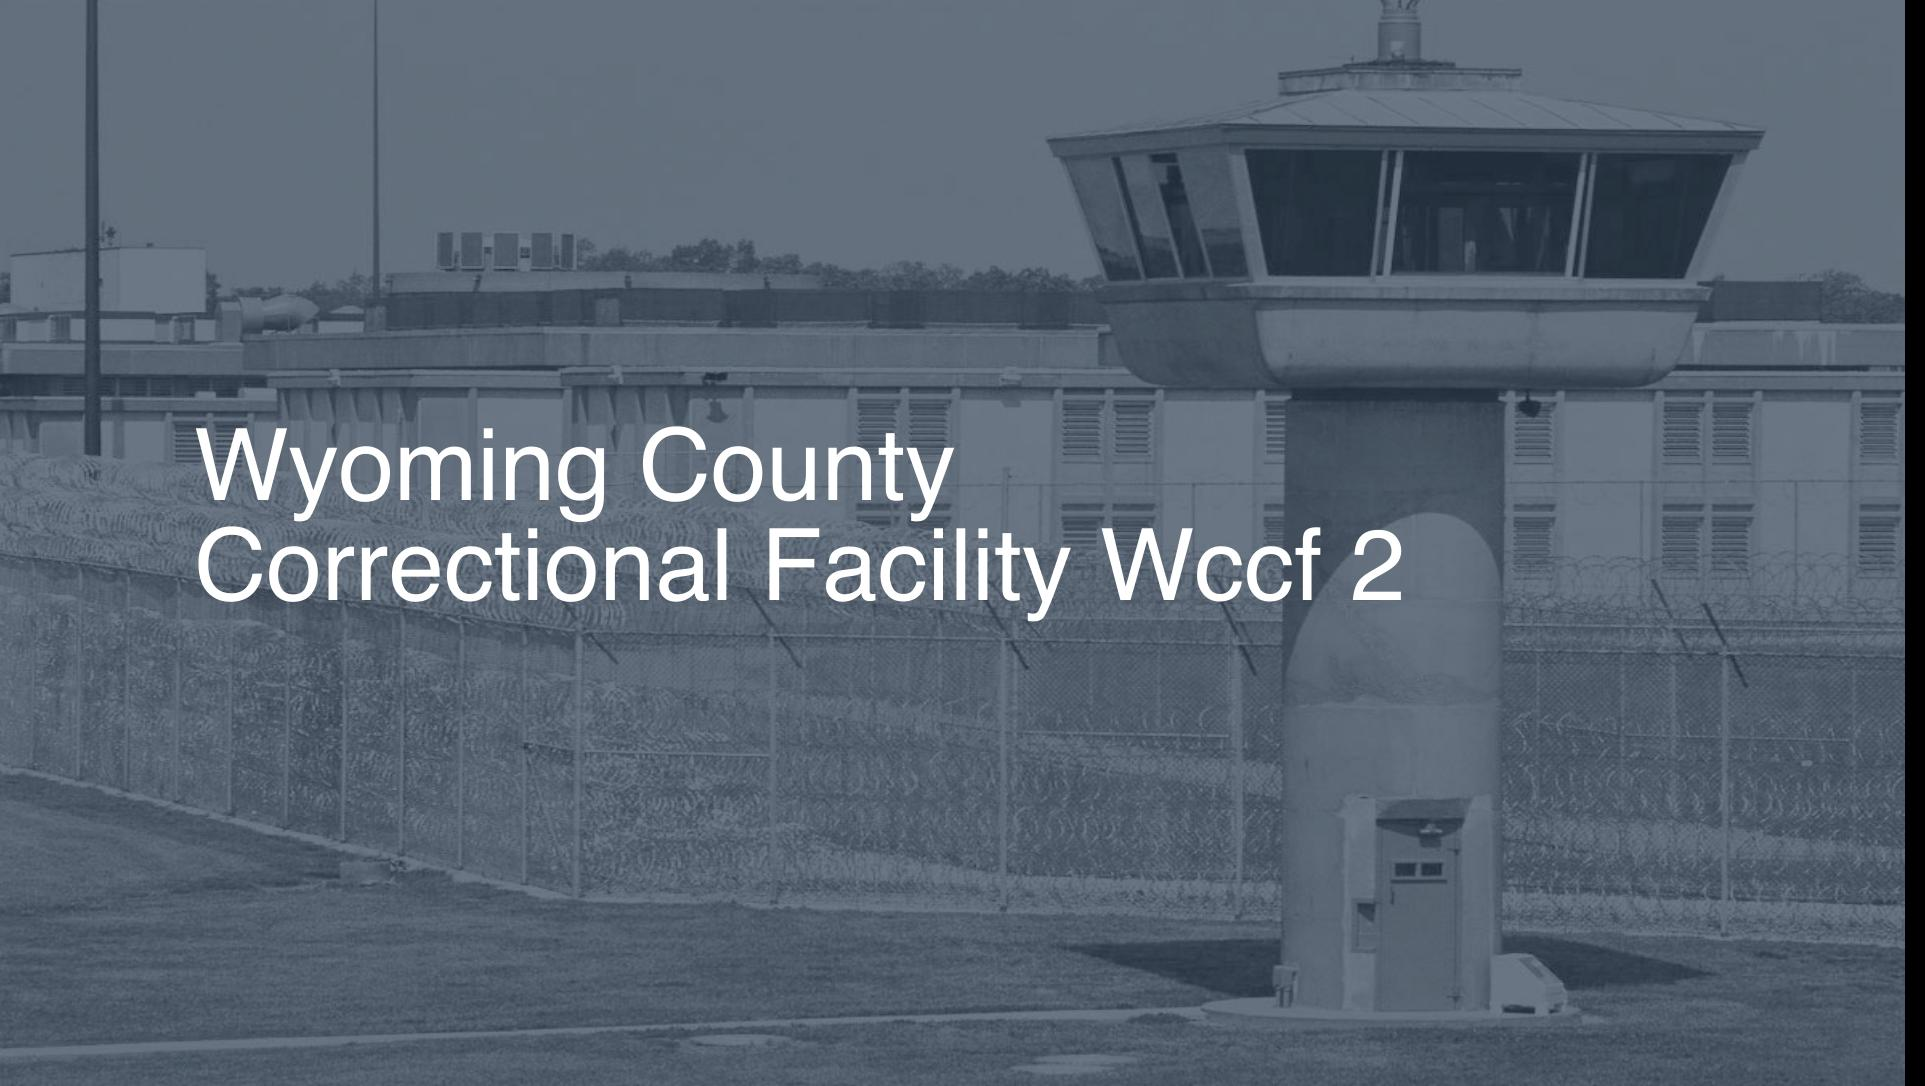 Wyoming County Correctional Facility (WCCF) correctional facility picture